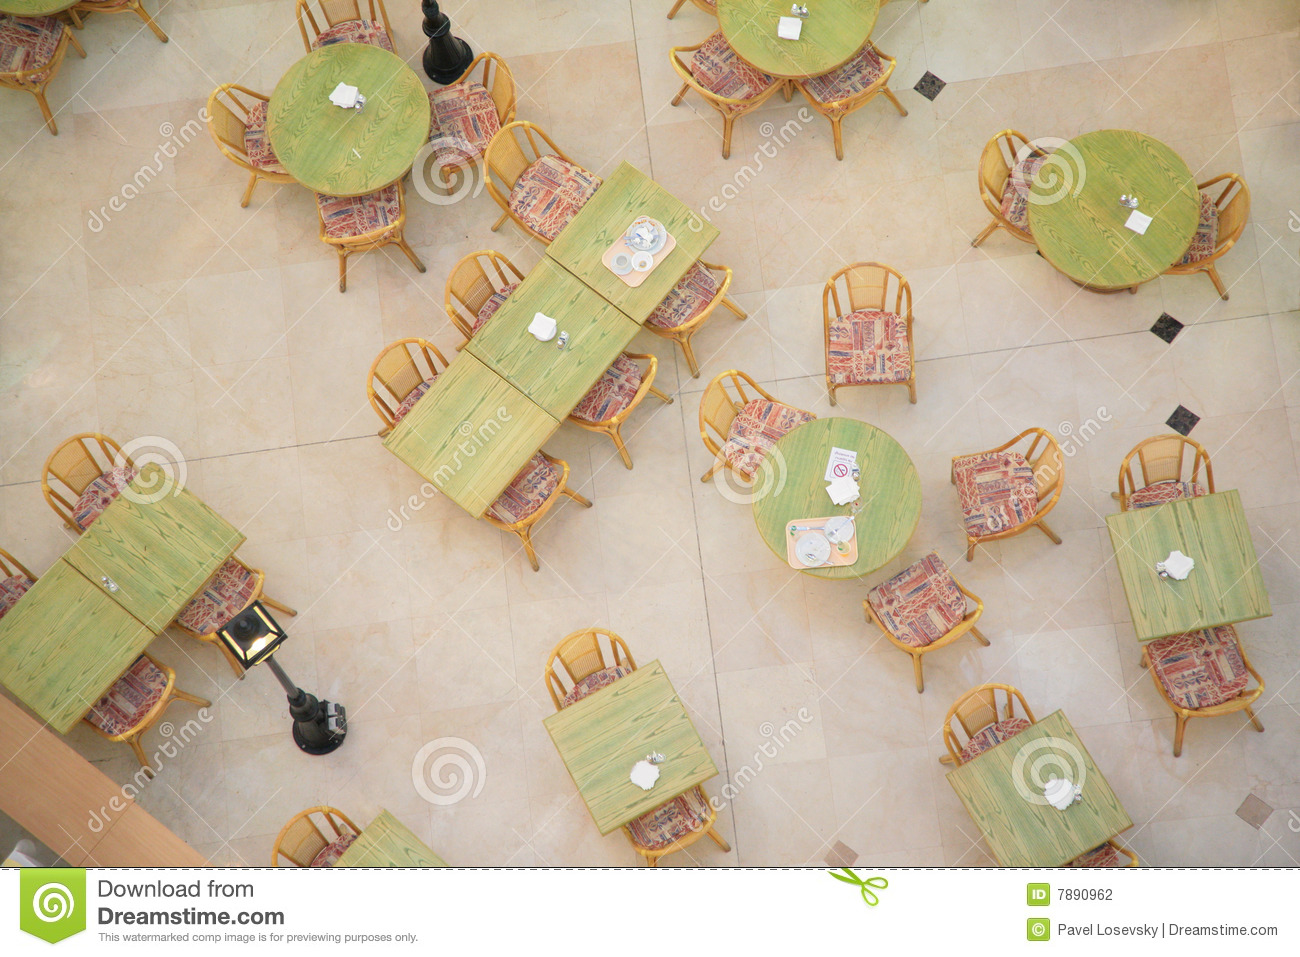 modern chairs for sitting room wedding chair covers exeter tables in cafe from top view stock photo - image: 7890962